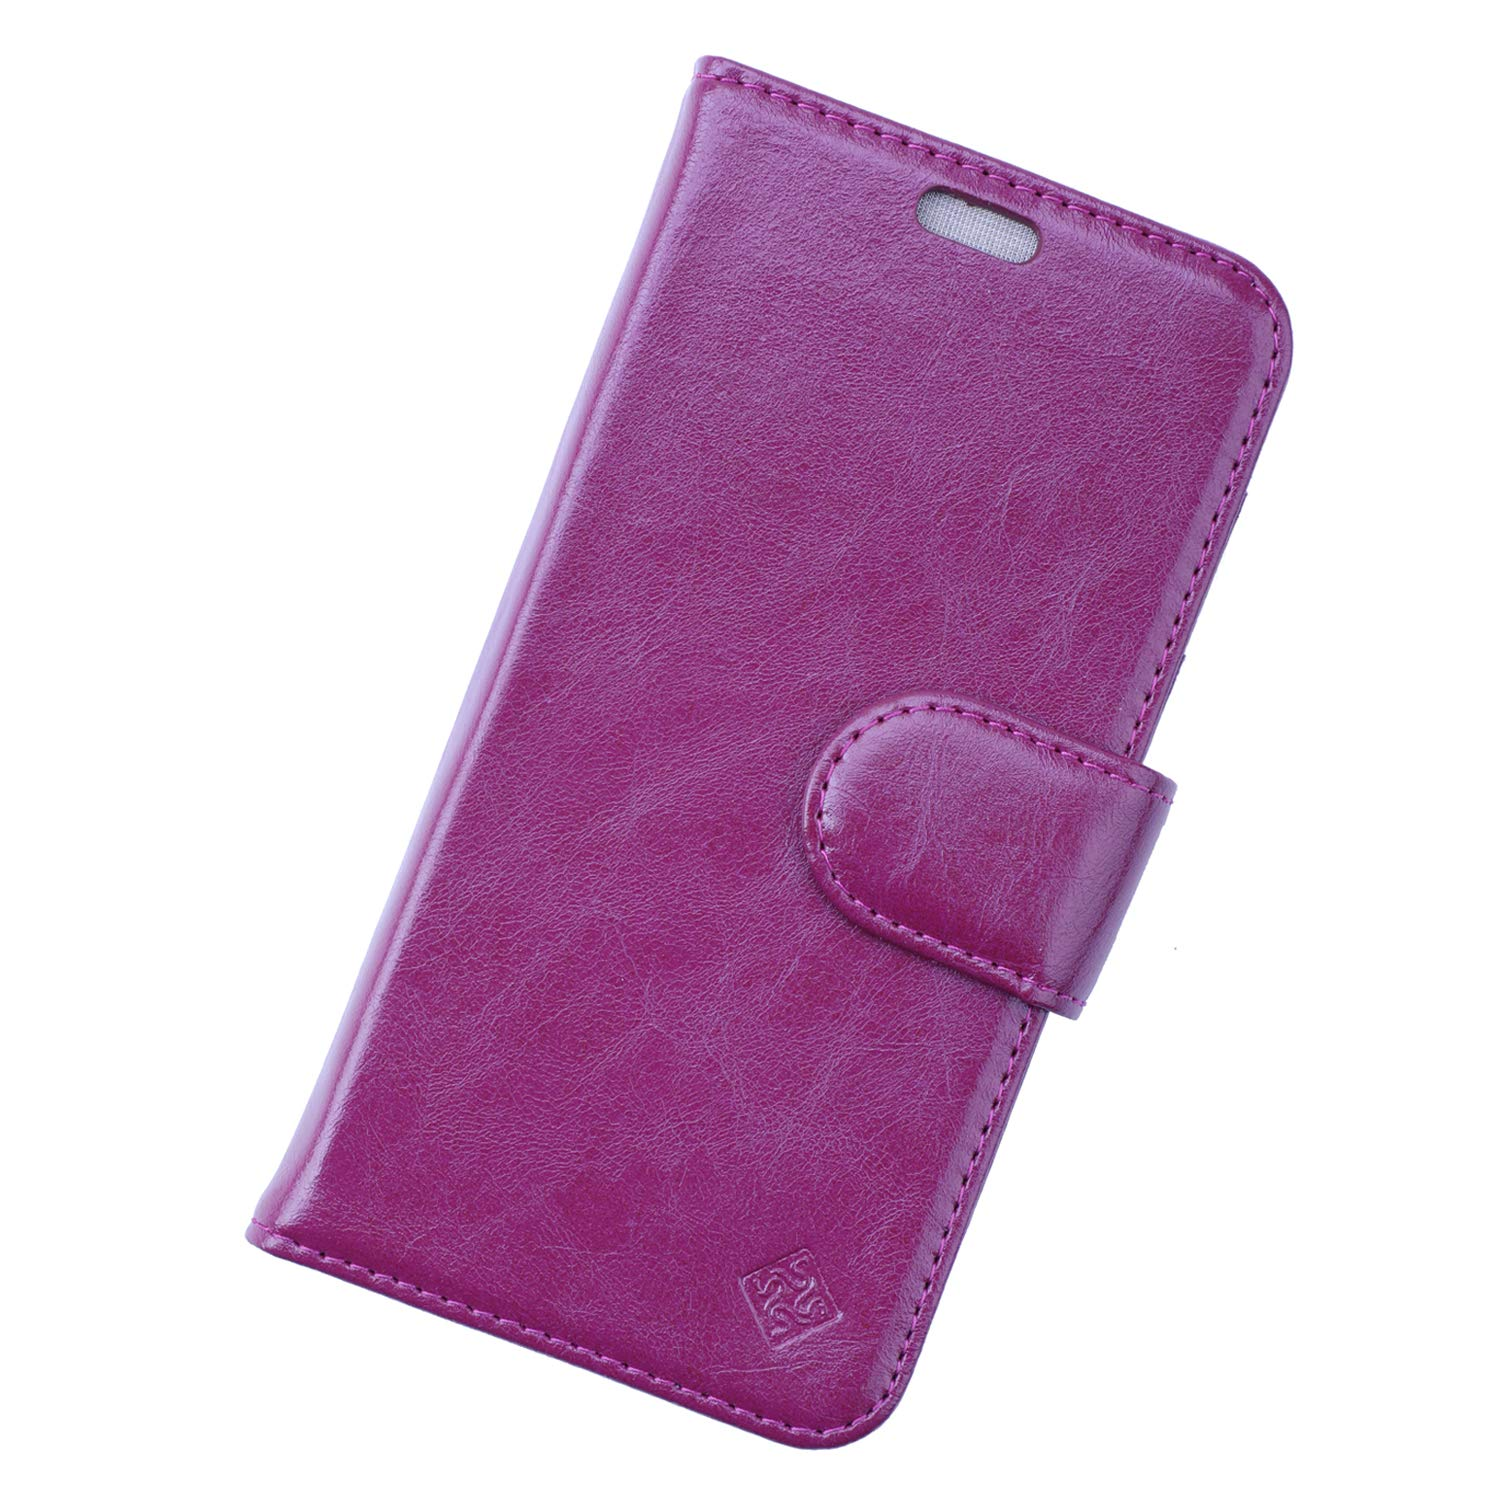 Sanxir Anti-Radiation Case, EMF and RF Protection Wallet Case Against Drops for iPhone 8 and iPhone 7 (Not Plus) with A New Classes of Nanoscale Graphene-Based Materials with RFID Protection. (Plum)